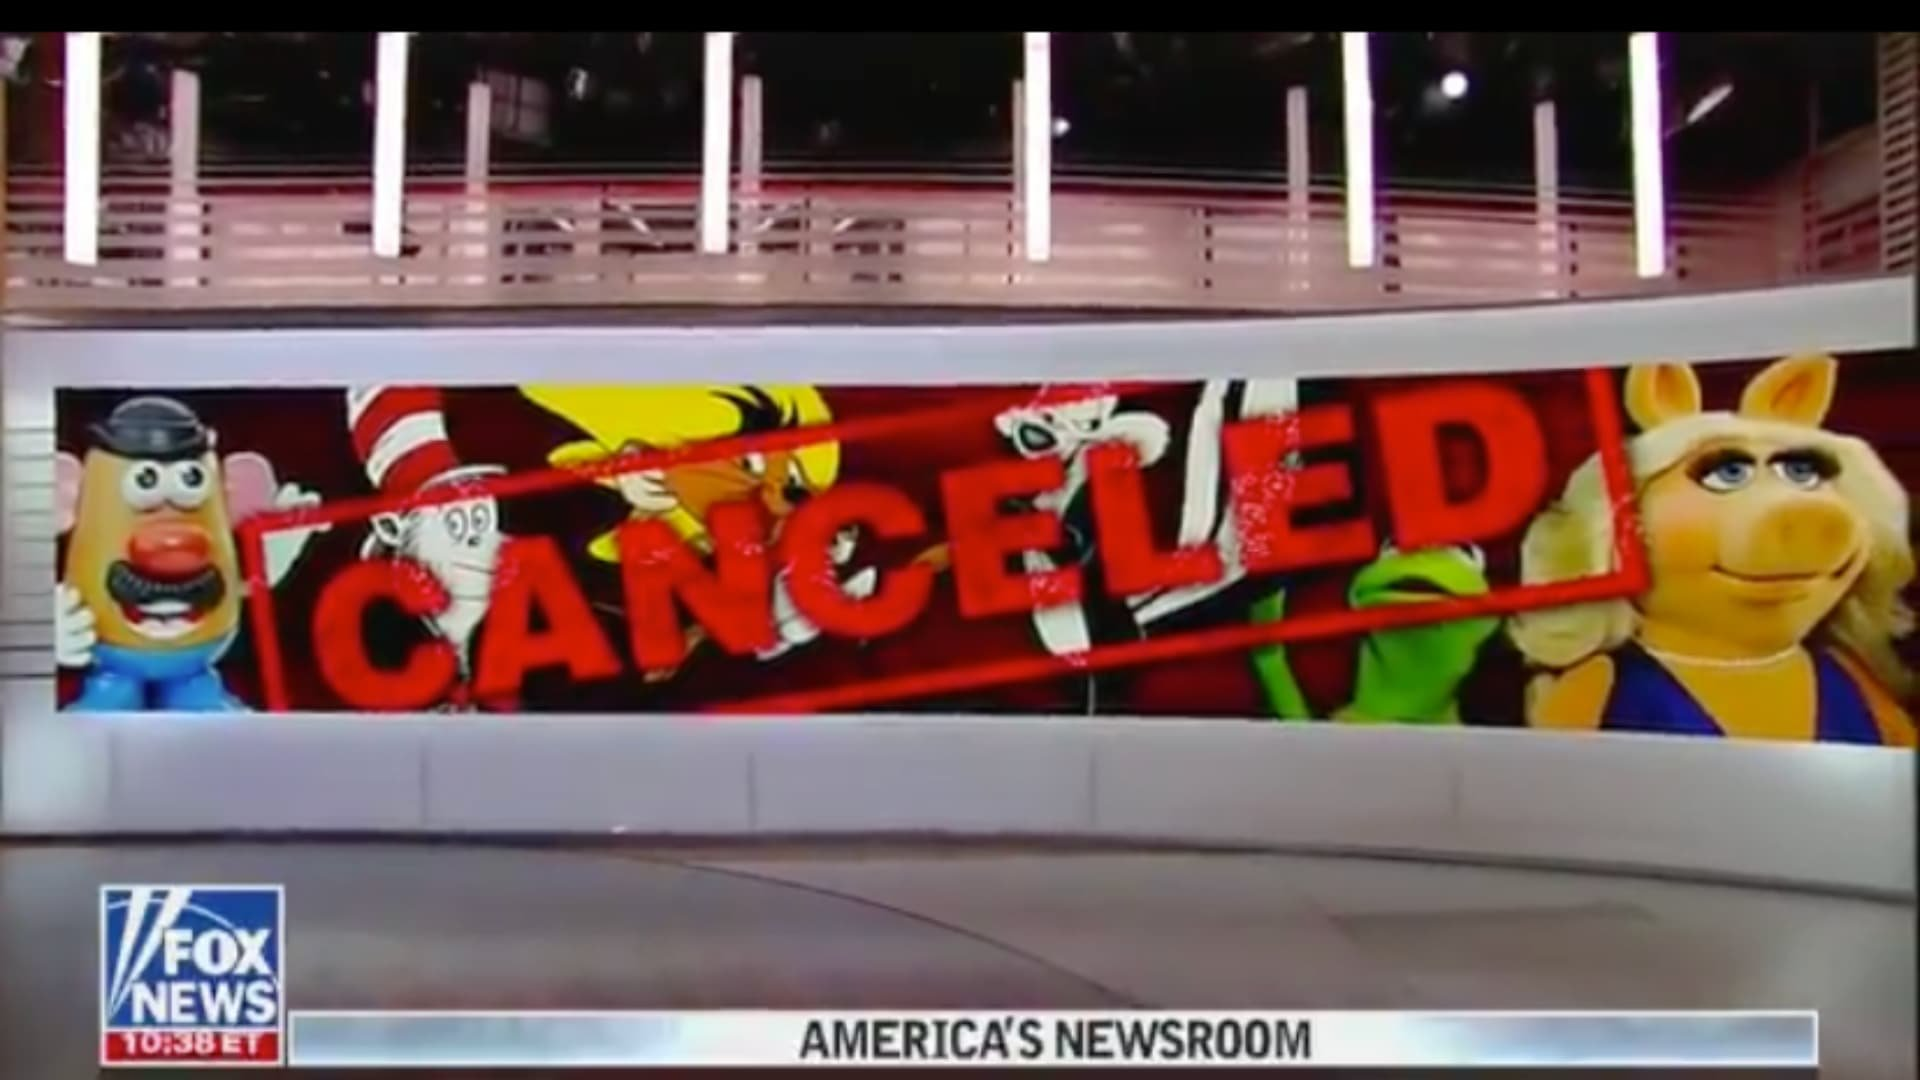 Fox News dragged for suggesting Gen X can save America from cancel culture - TheGrio